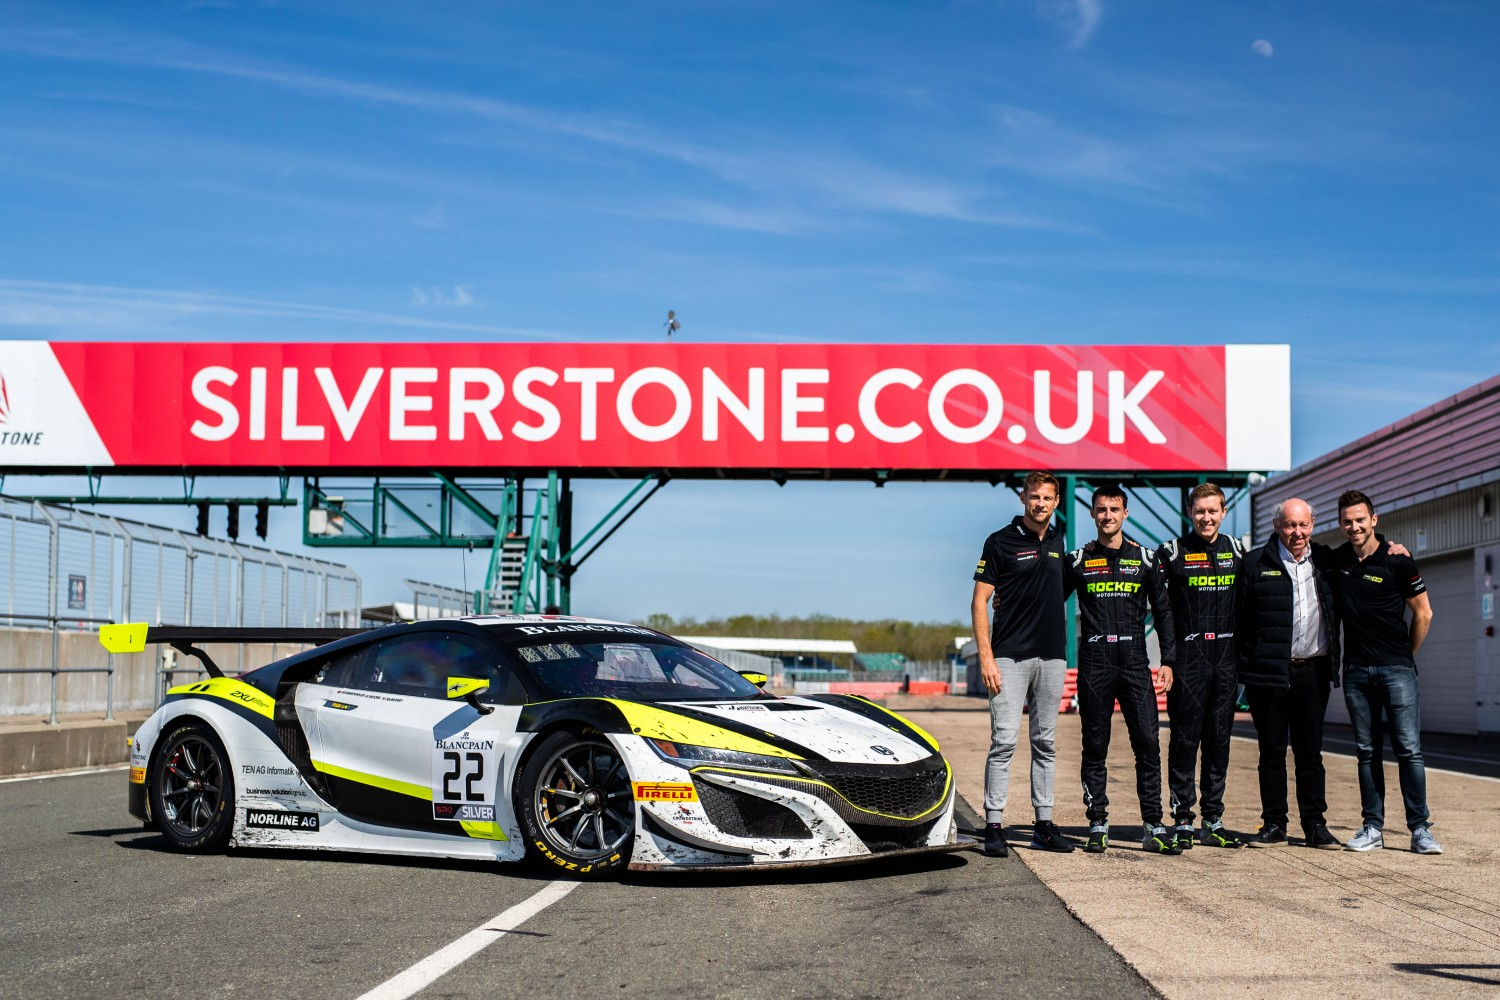 JENSON BUTTON JOINS HIS GT3 TEAM AT SILVERSTONE FOLLOWING BLANCPAIN GT SERIES WEEKEND